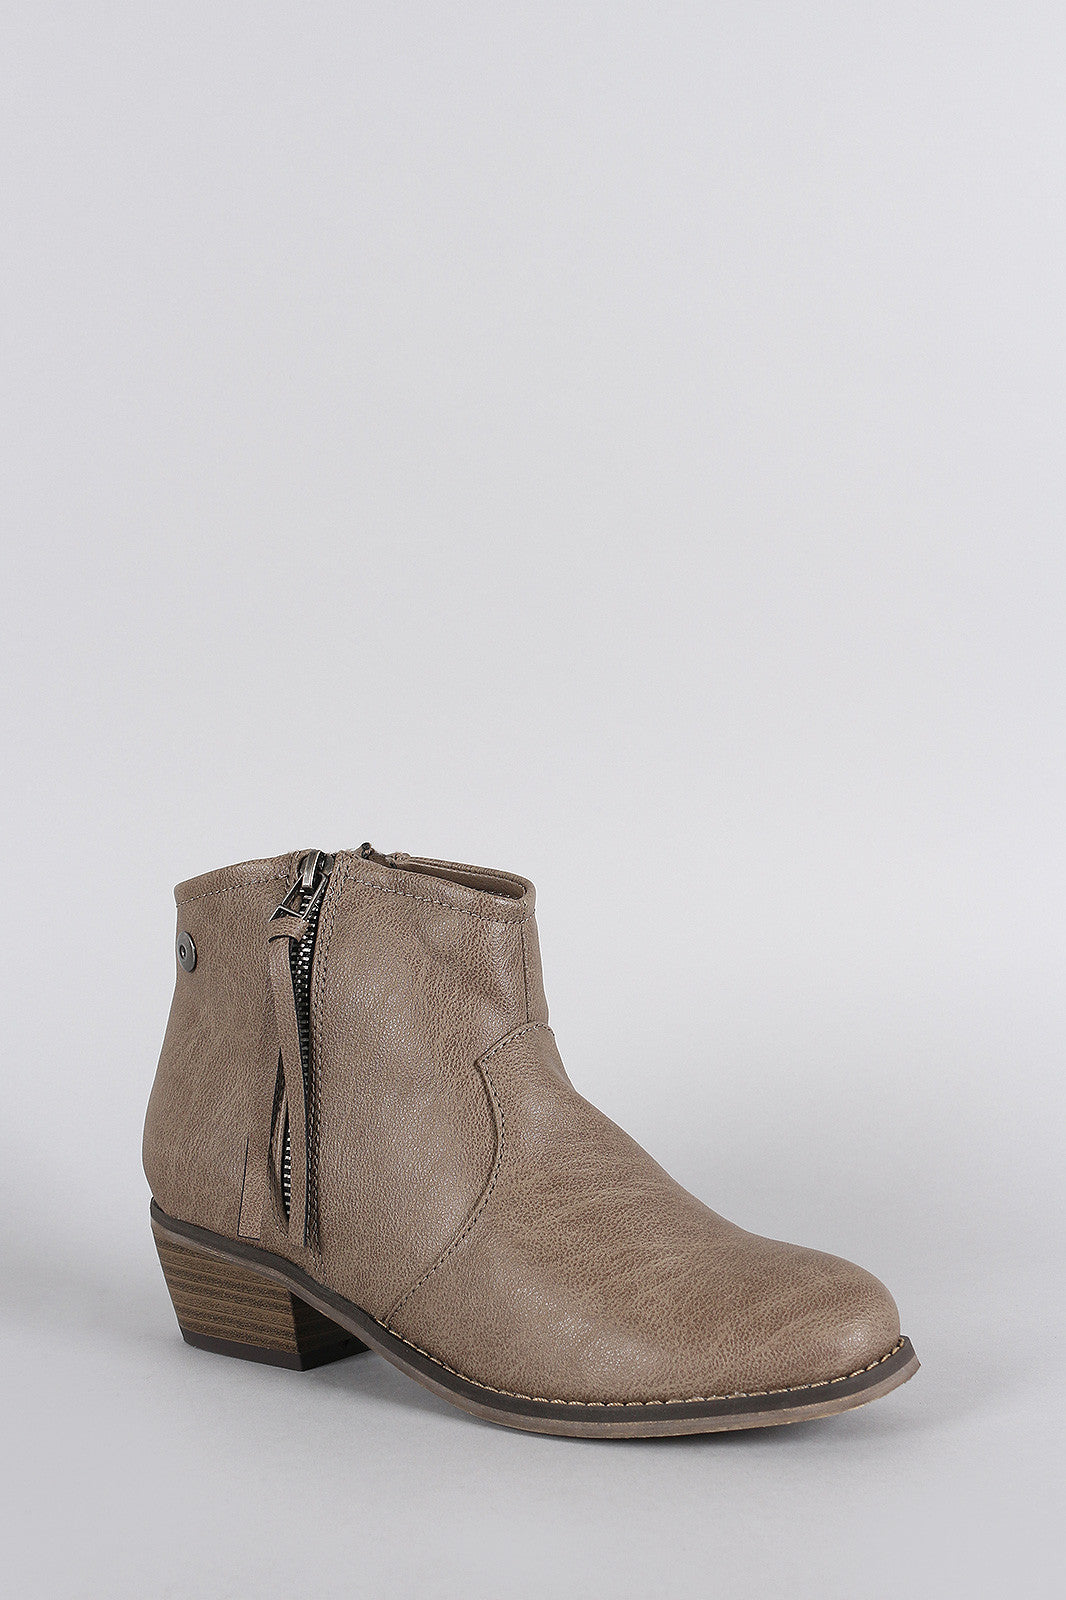 Breckelle Zipper Round Toe Cowgirl Ankle Boots